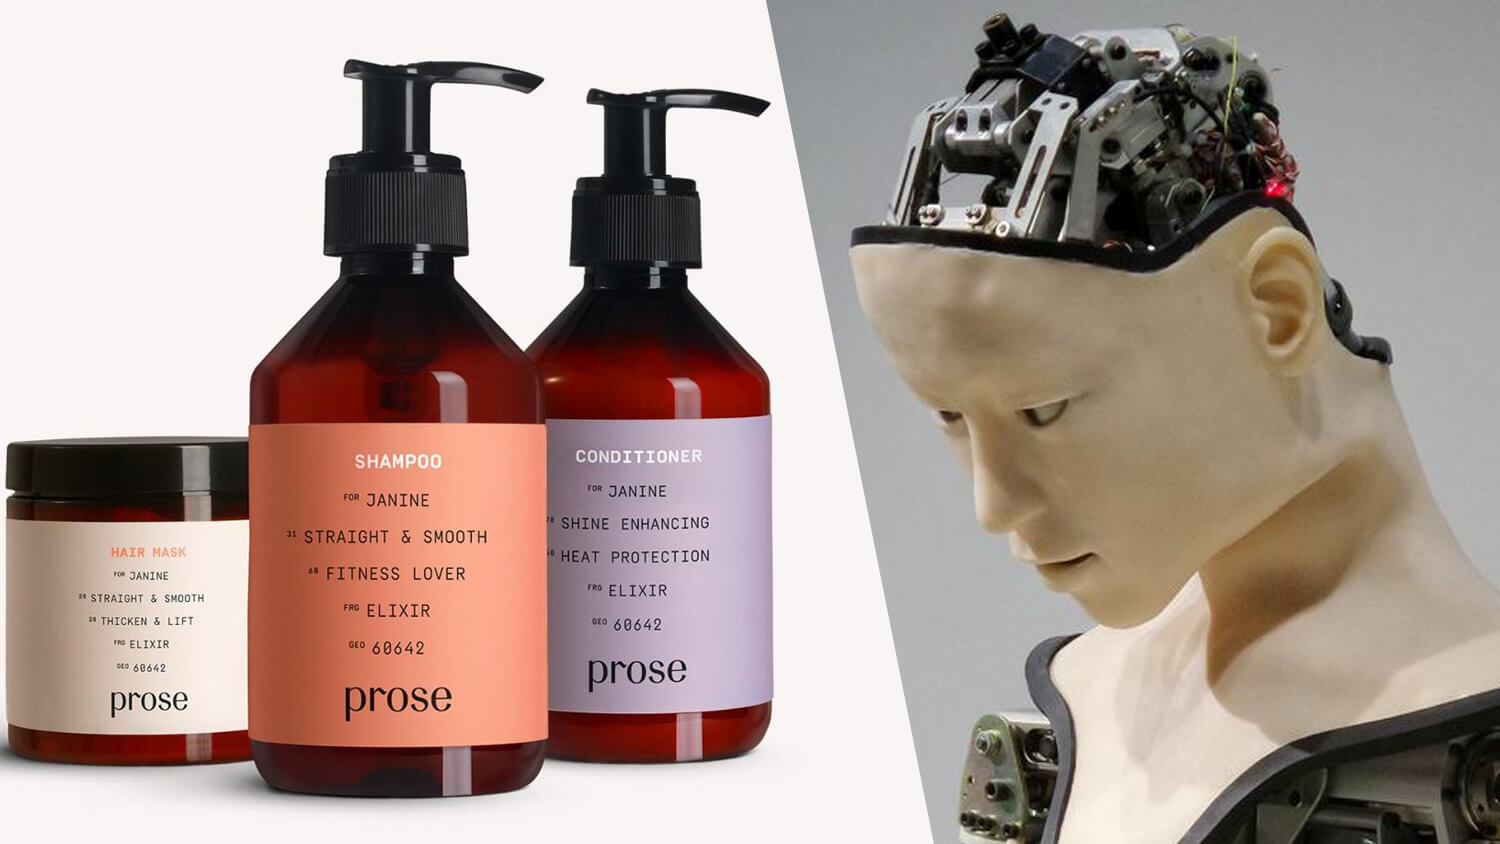 Vegan Shampoo Brand Prose Is Being Perfected By Artificial Intelligence